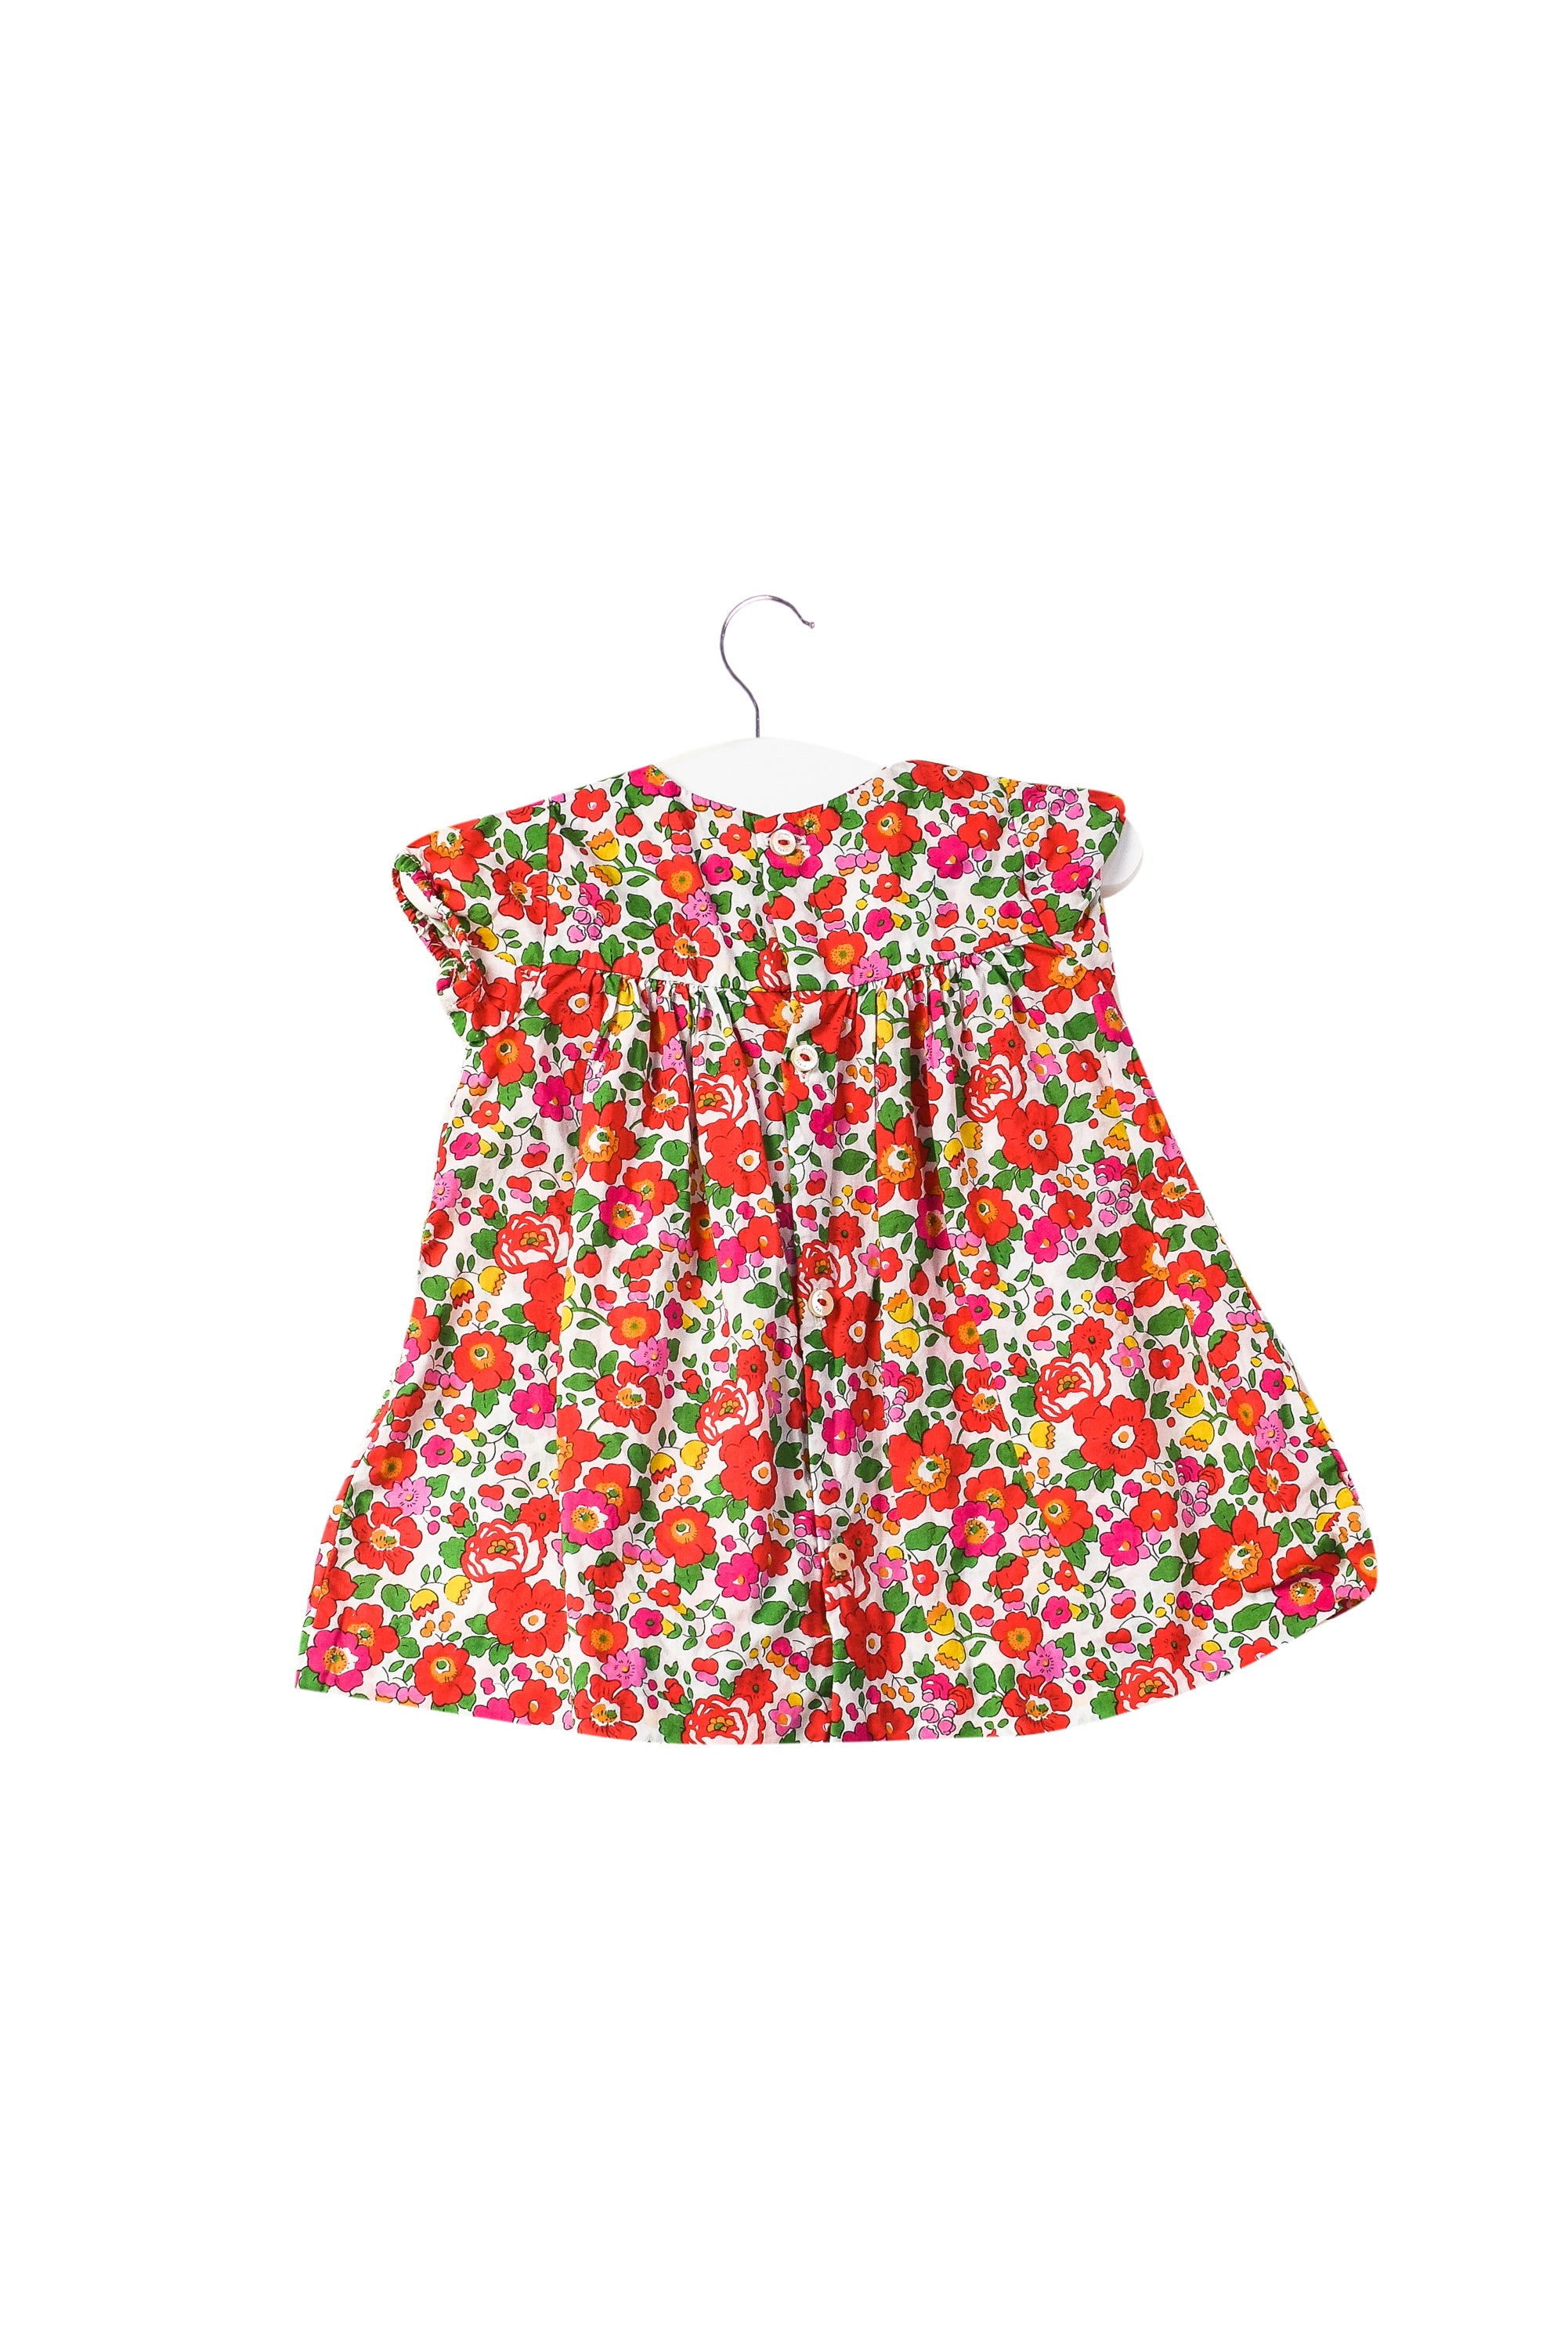 10044354 Jacadi Baby~Short Sleeve Dress 3M at Retykle